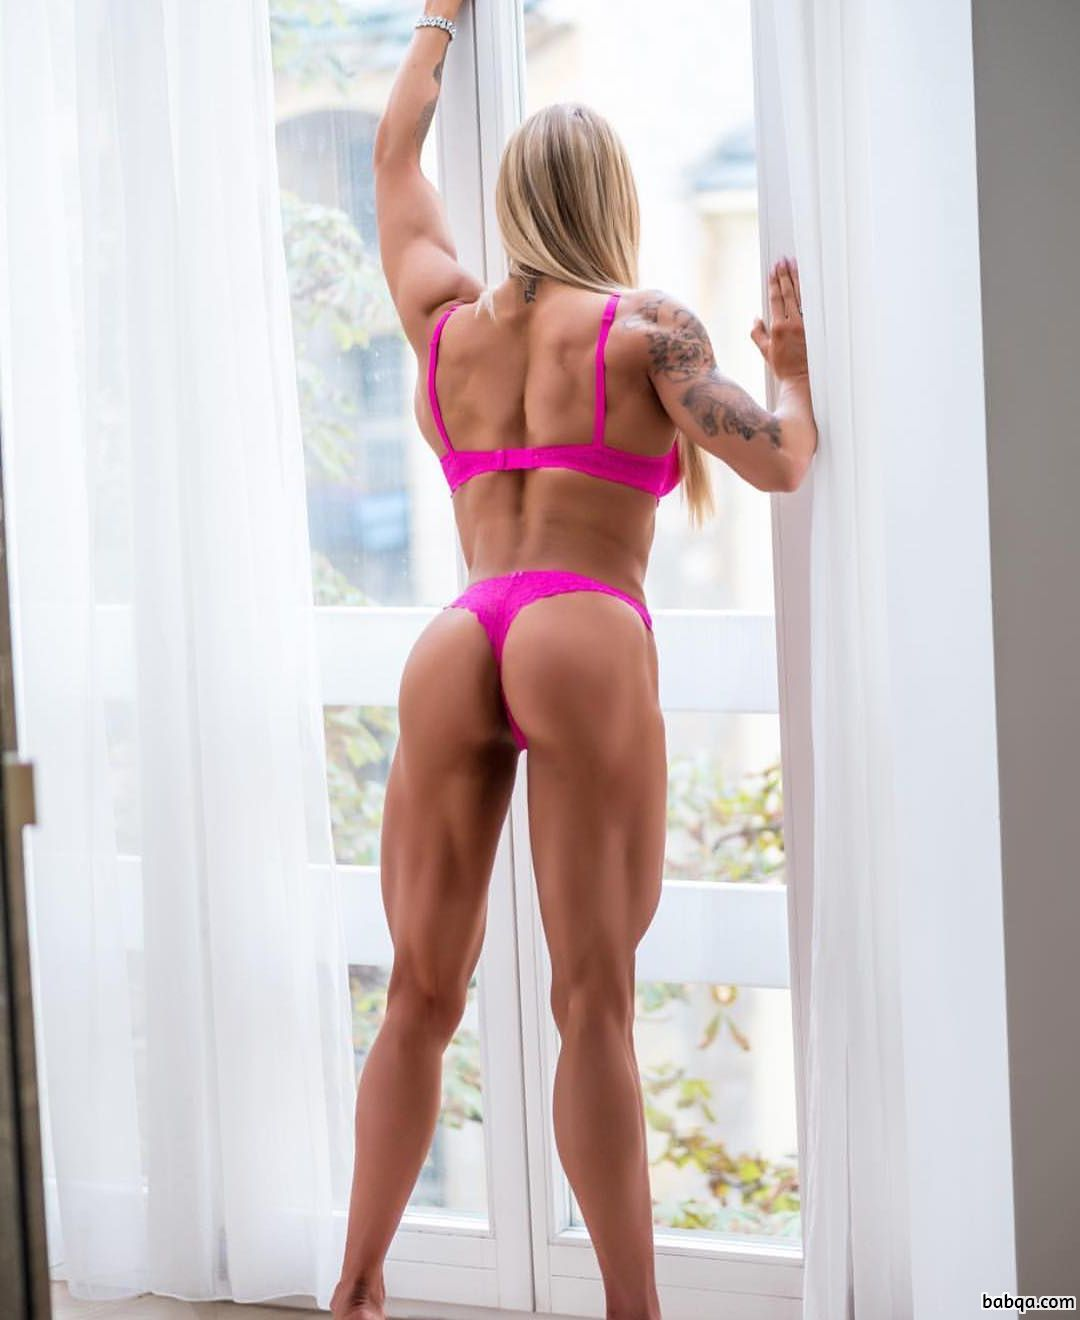 spicy female with fitness body and muscle arms post from instagram